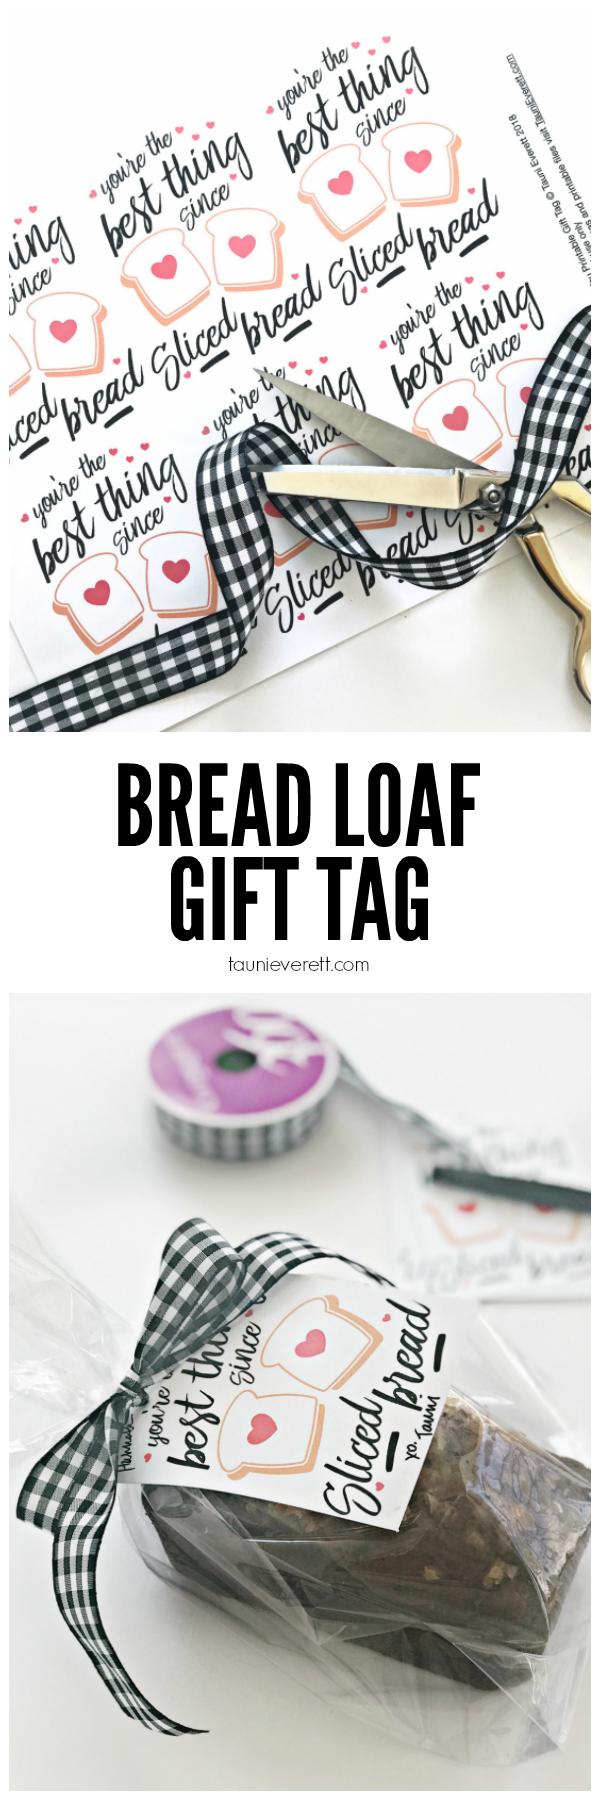 Bread Loaf Printable Gift Tag. Perfect for gifting loaves of bread to friends and neighbors! #printable #gifttag #bread